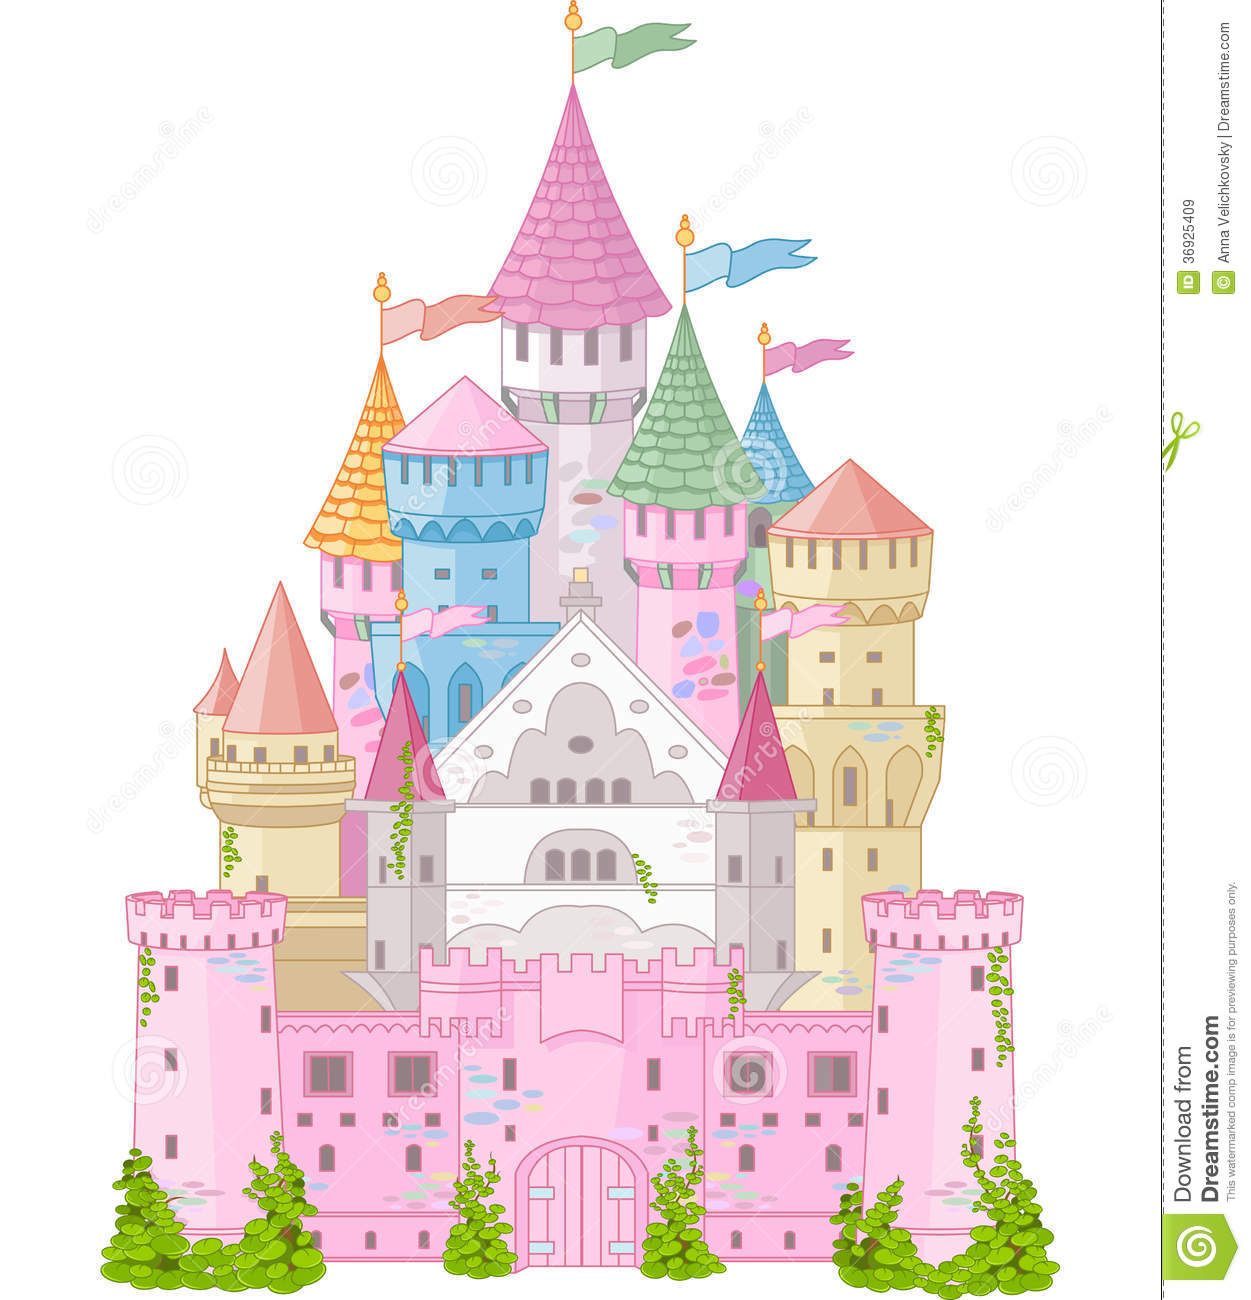 Fairy Tale Castle Royalty Free Stock Images - Image: 36925409 Beautiful Fairy Pictures